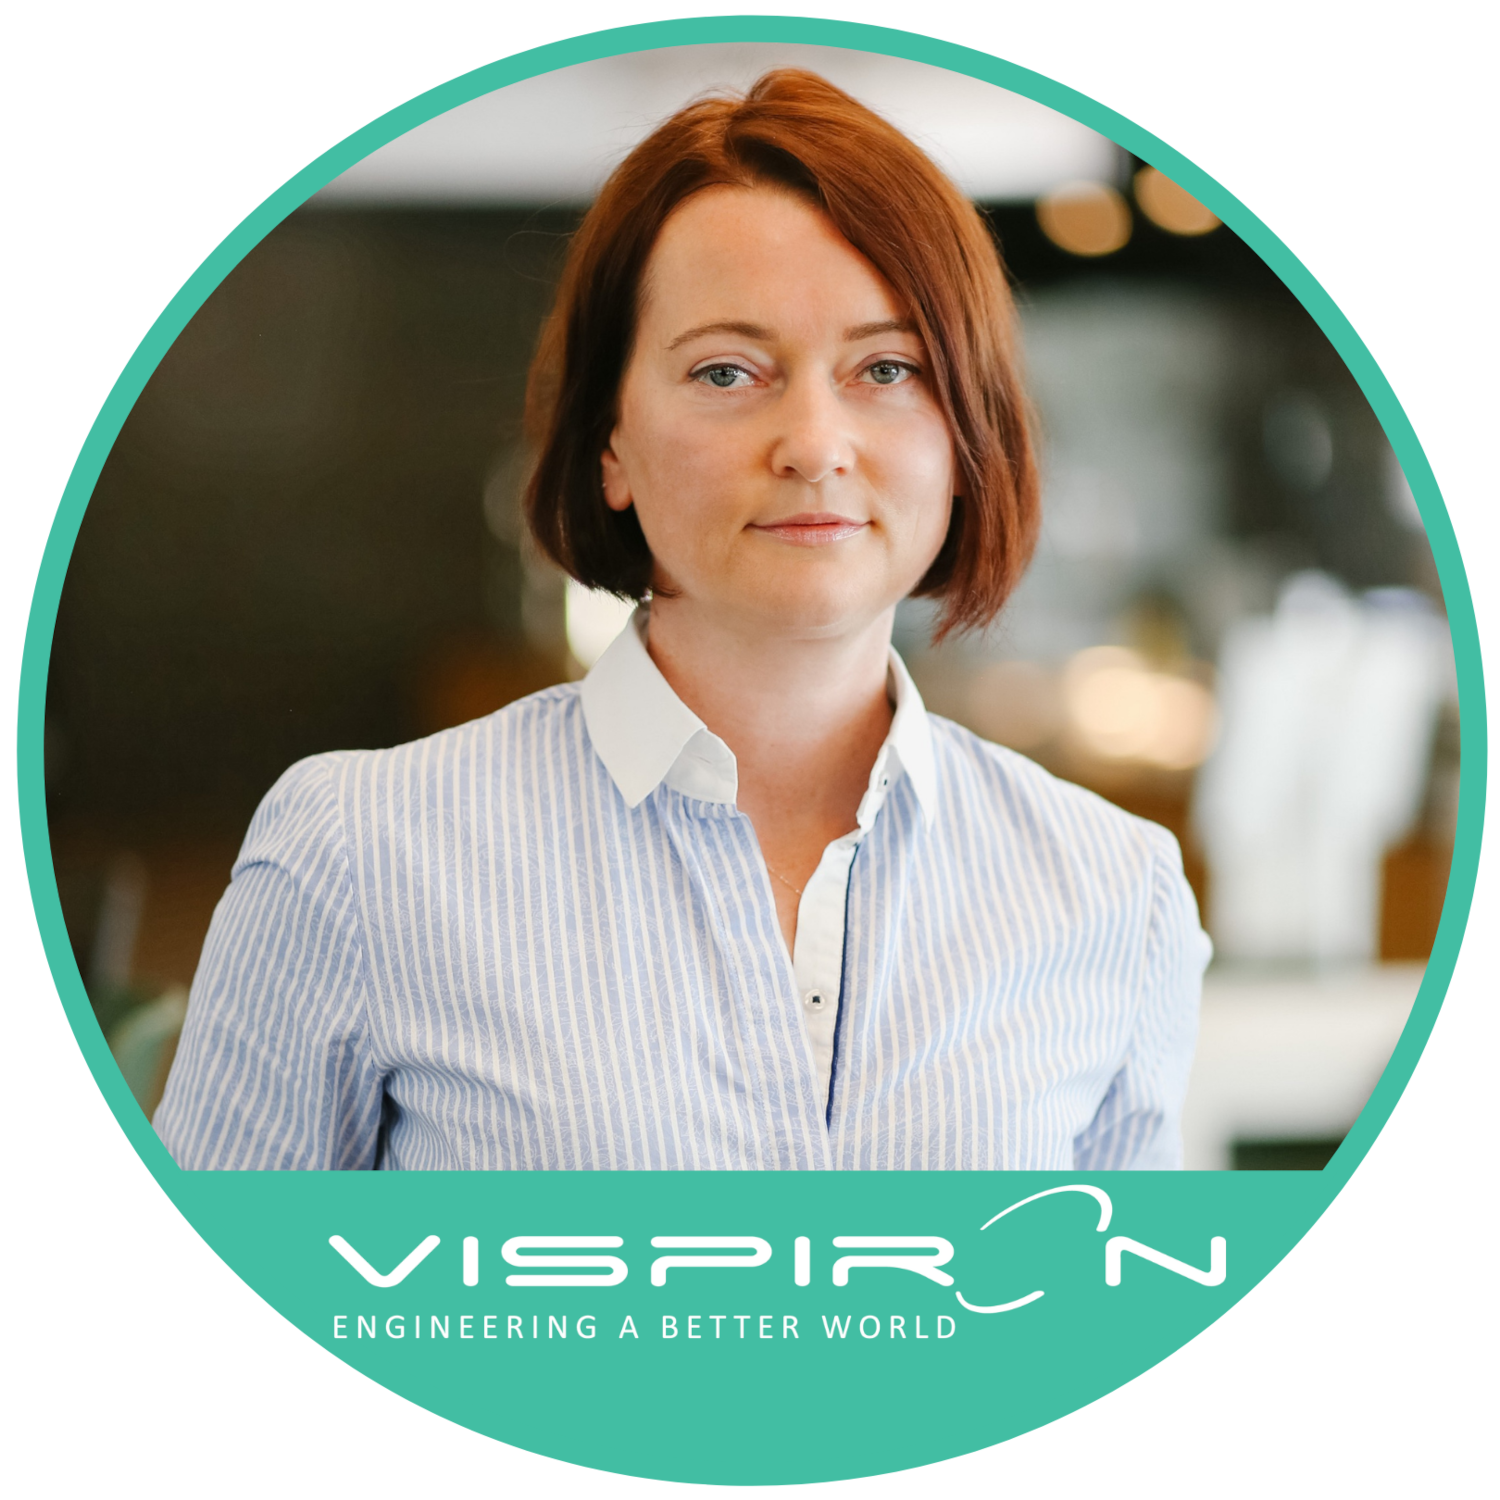 VISPIRON SYSTEMS Teamleiterin Qualitätsmanagement Manuela Grügel Blogautorin für das Thema Qualitätsmanagement / Projektmanagement / Prozessmanagement